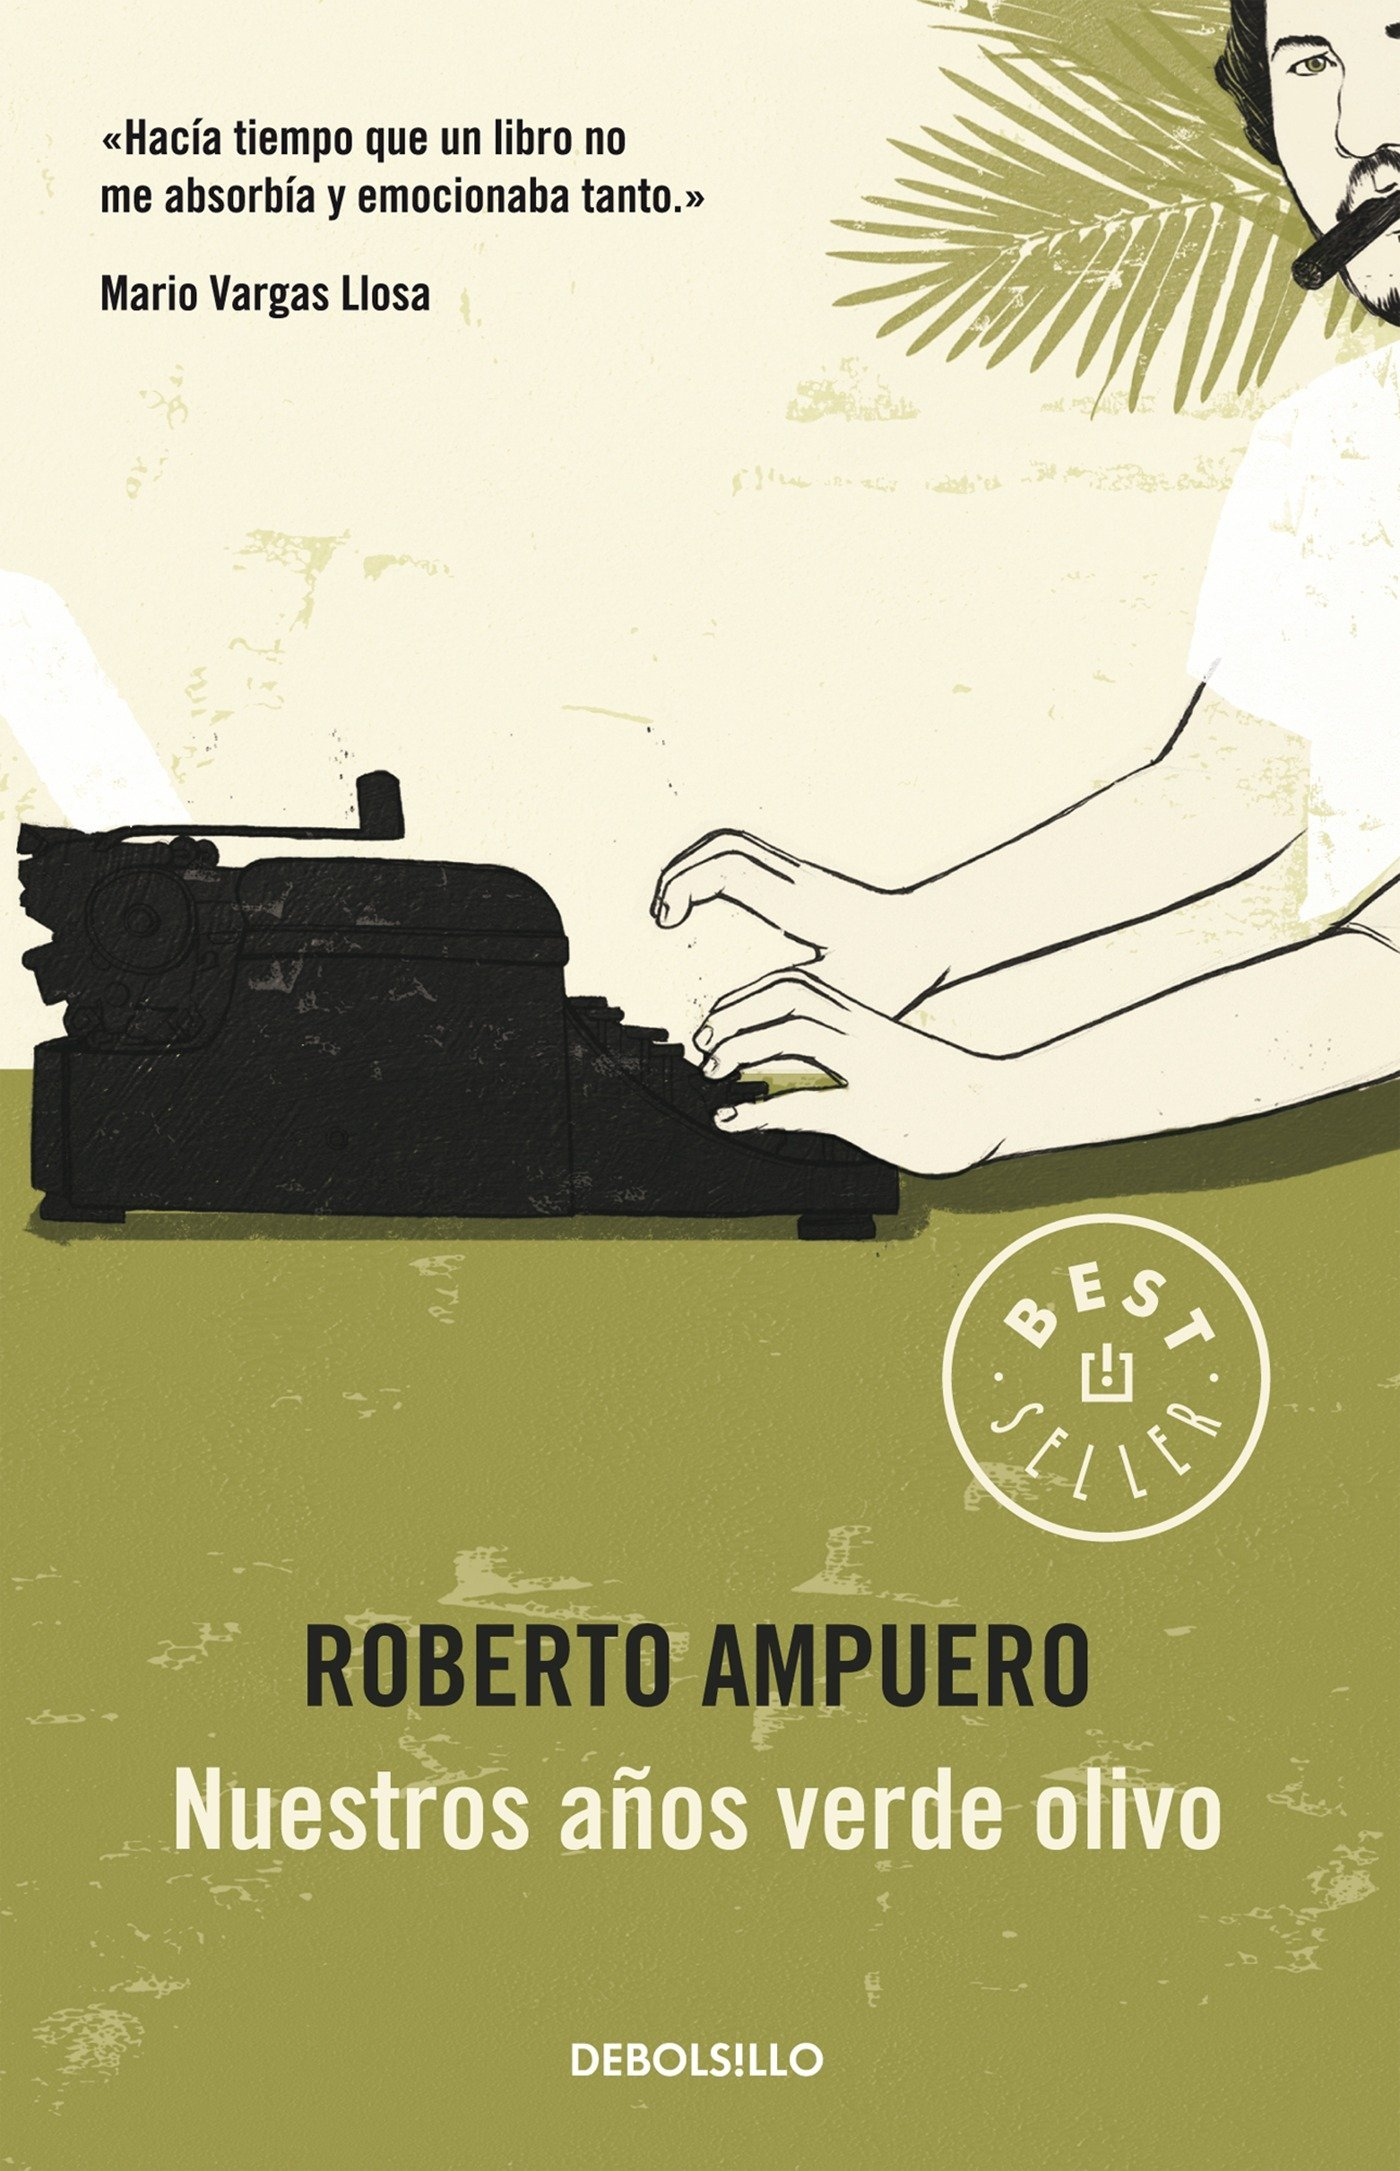 Amazon.com: Nuestros años verde olivo / Our Olive Green Years (Spanish Edition) (9786073114868): Roberto Ampuero: Books